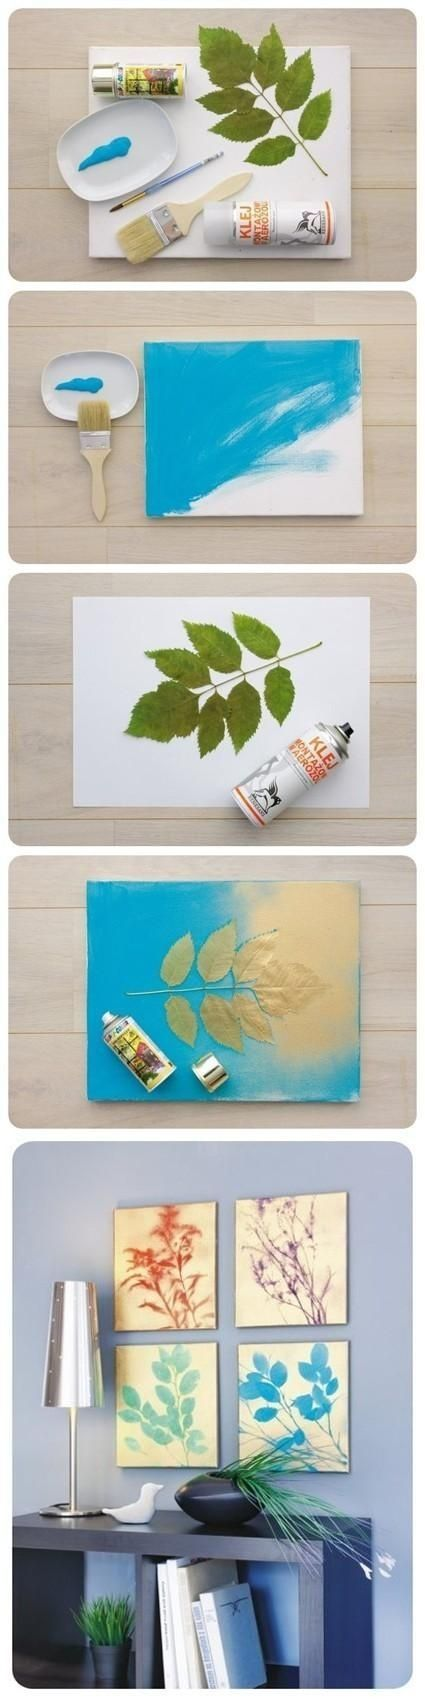 neat art idea for around the home